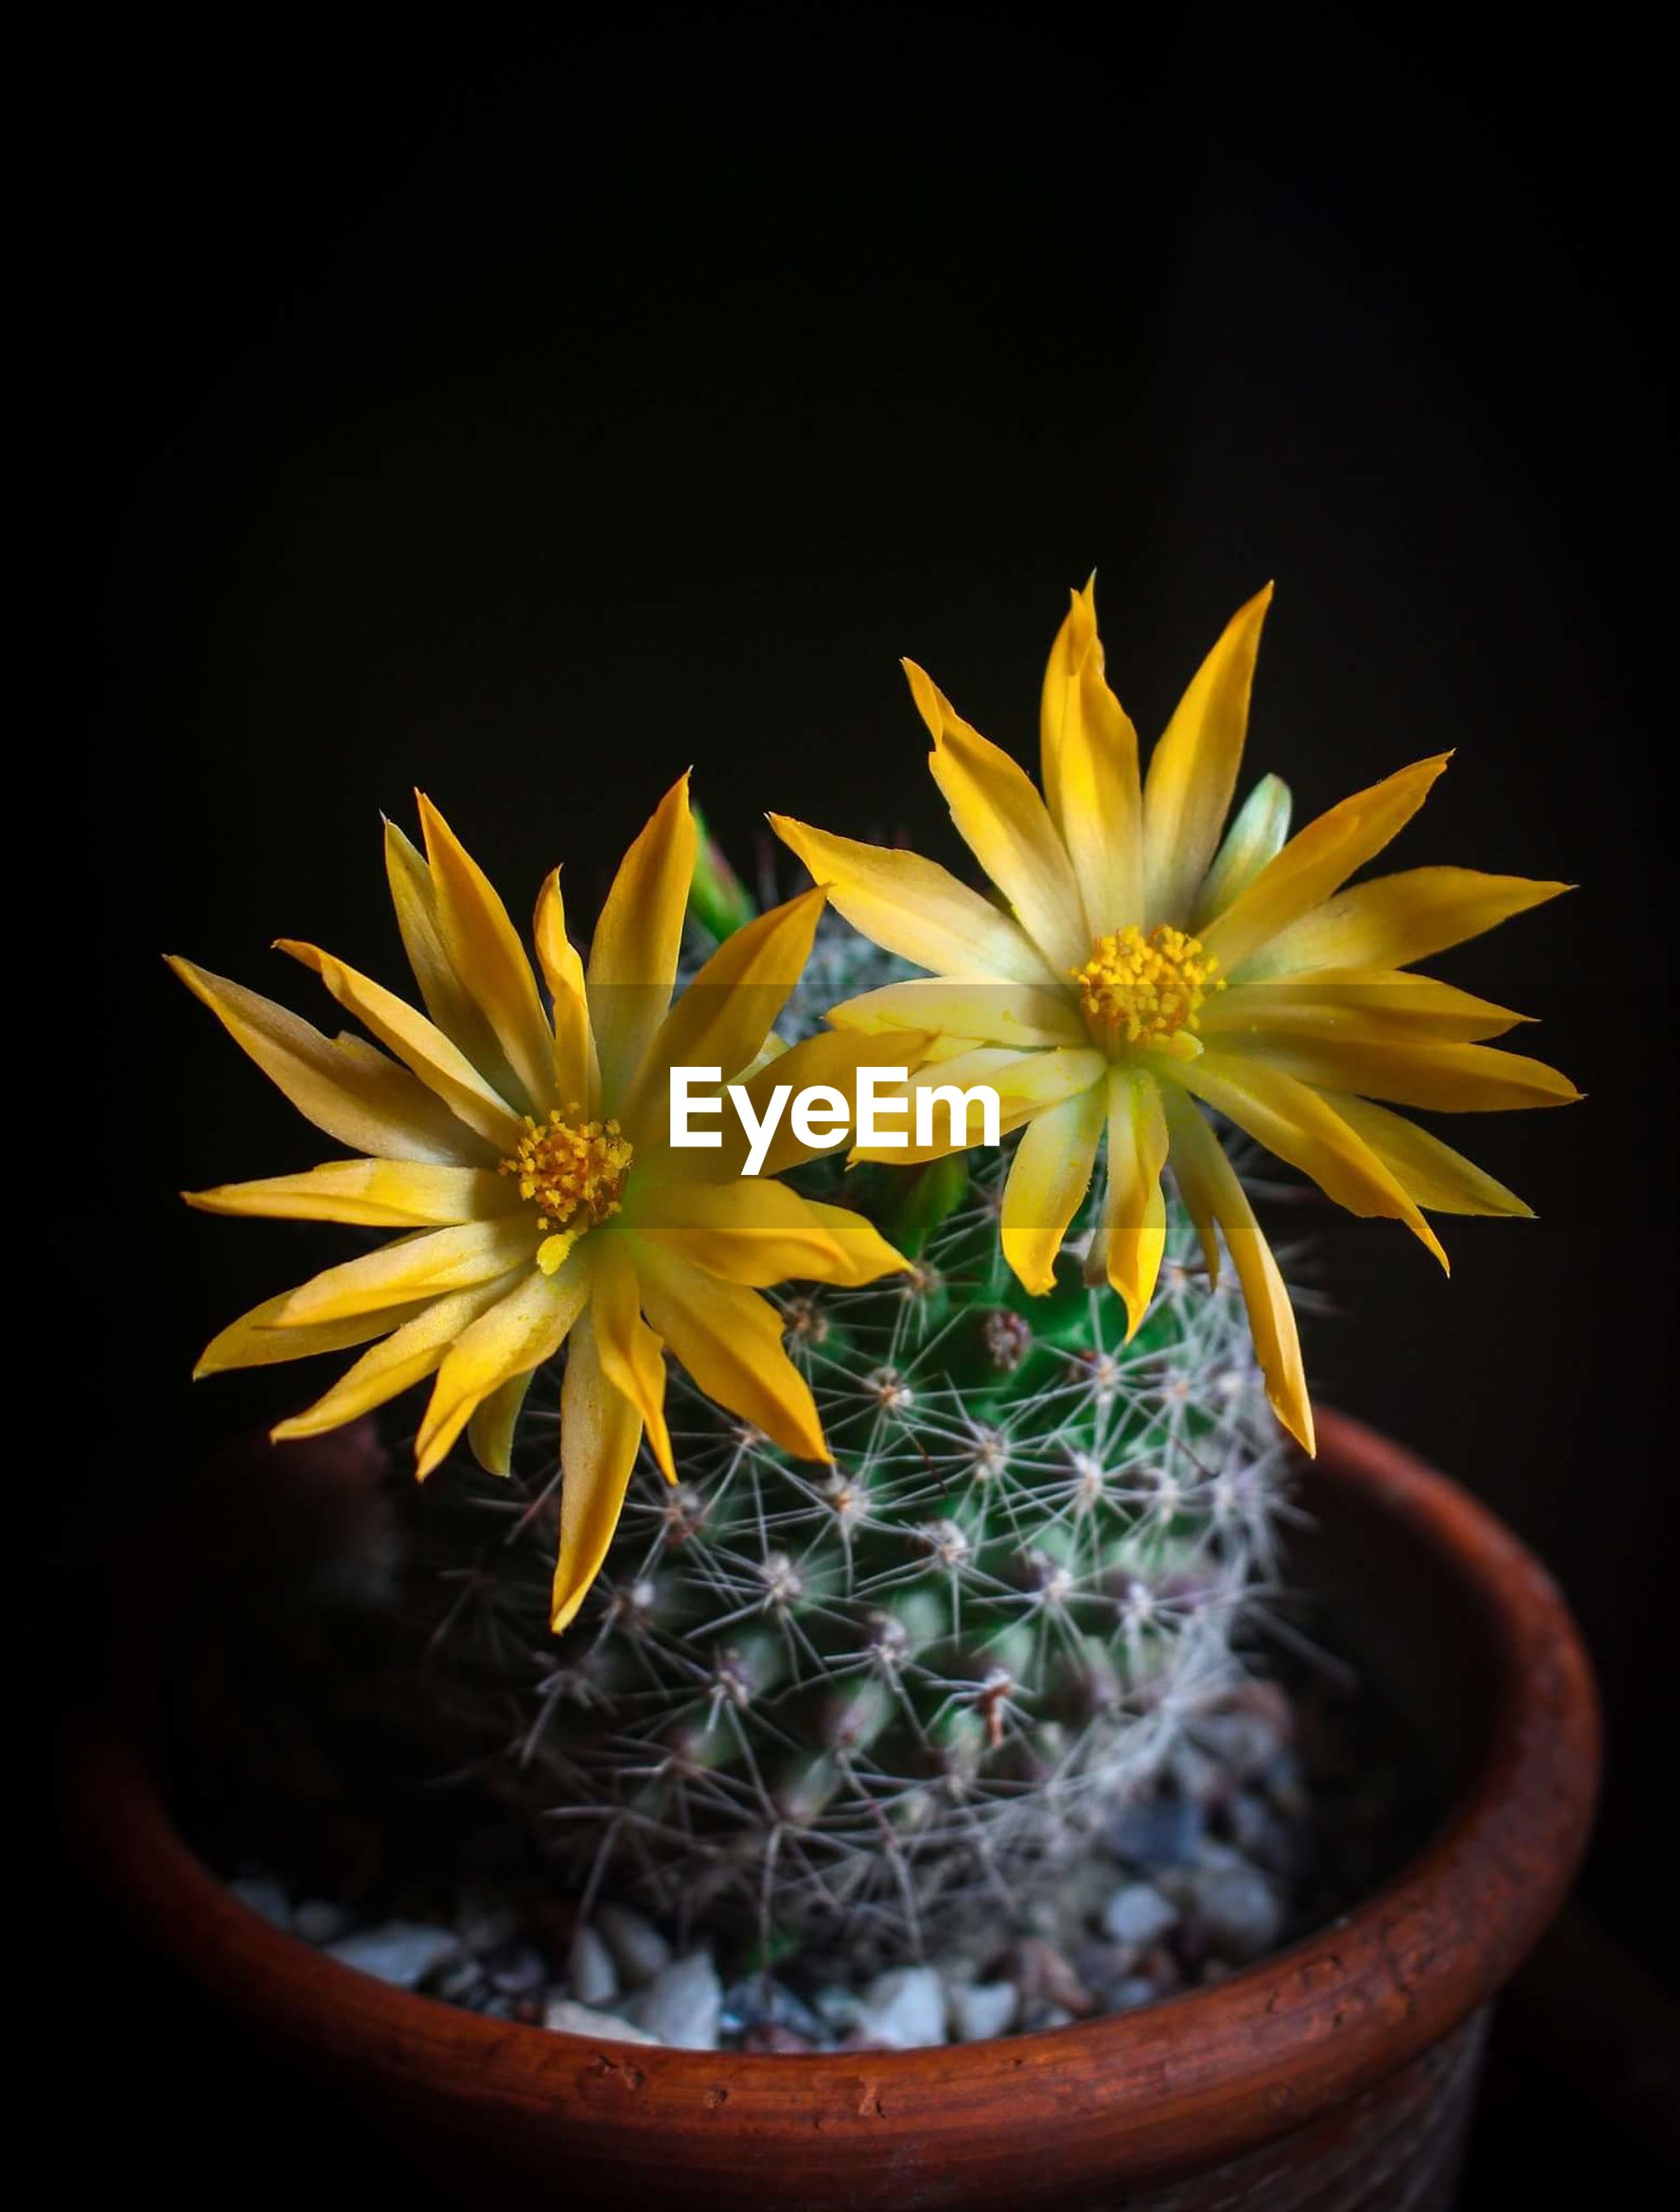 flower, nature, yellow, growth, plant, fragility, beauty in nature, freshness, petal, no people, flower head, potted plant, close-up, blooming, sunflower, black background, outdoors, day